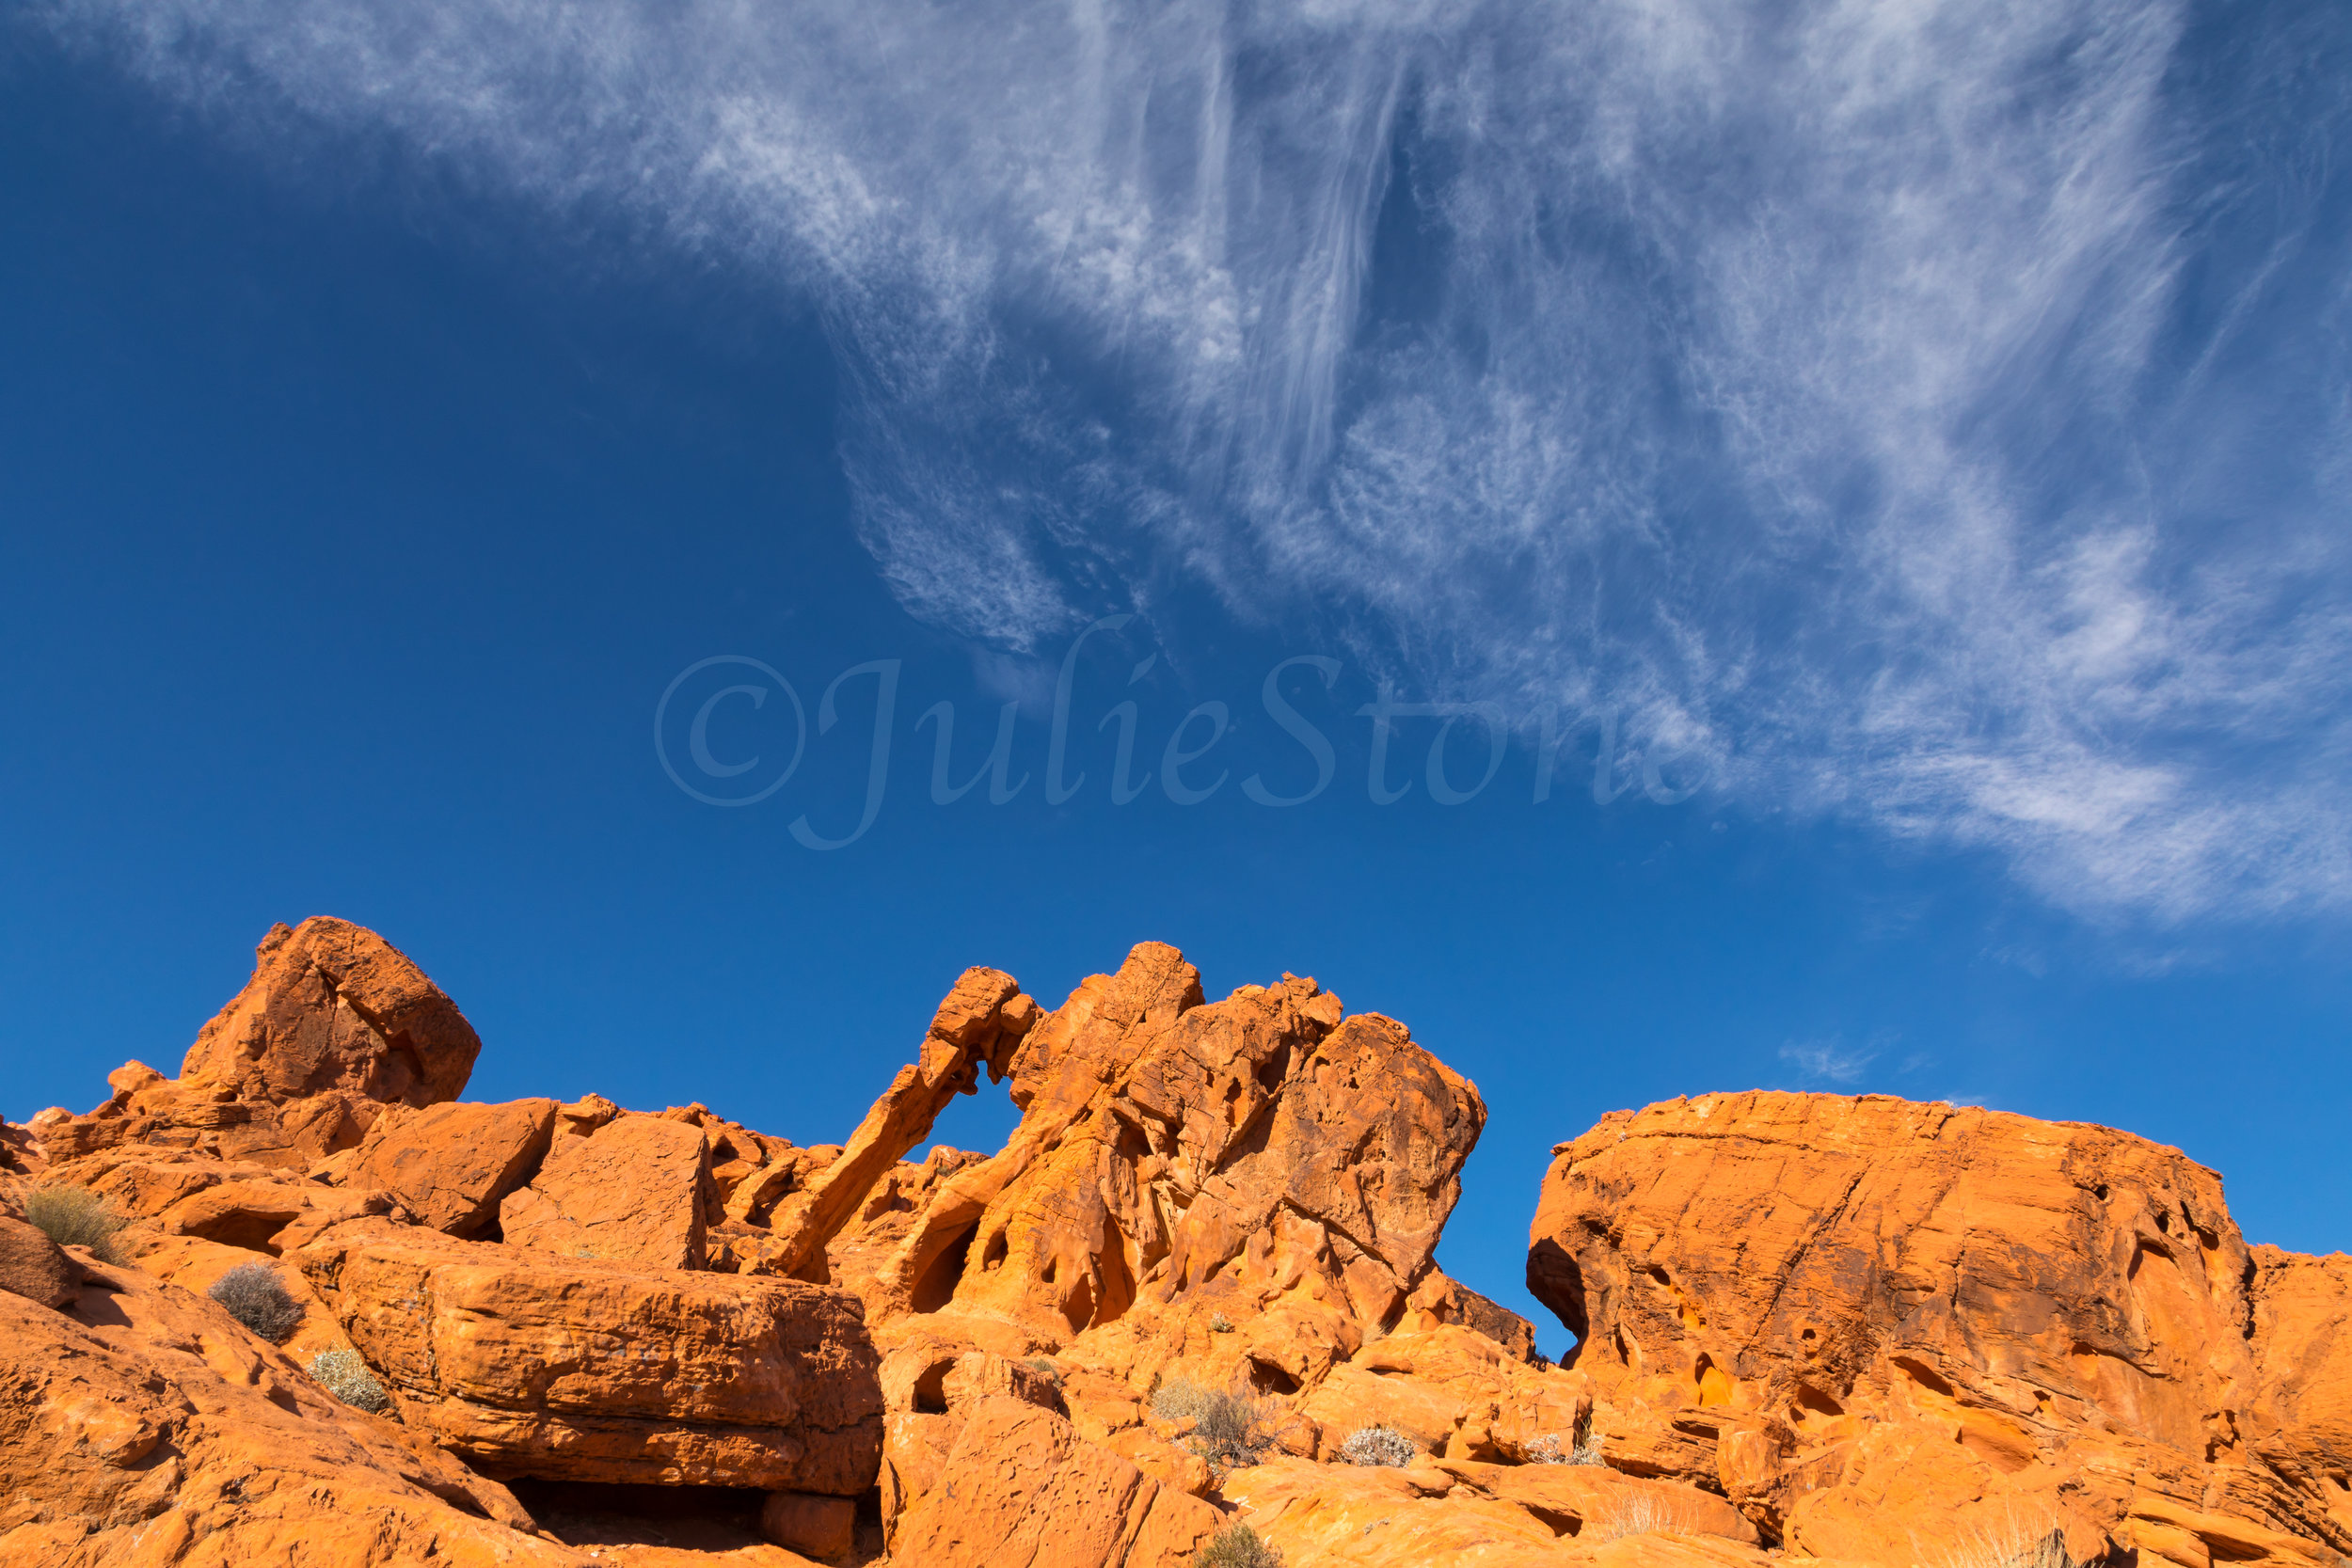 Valley of Fire, Image # 3338